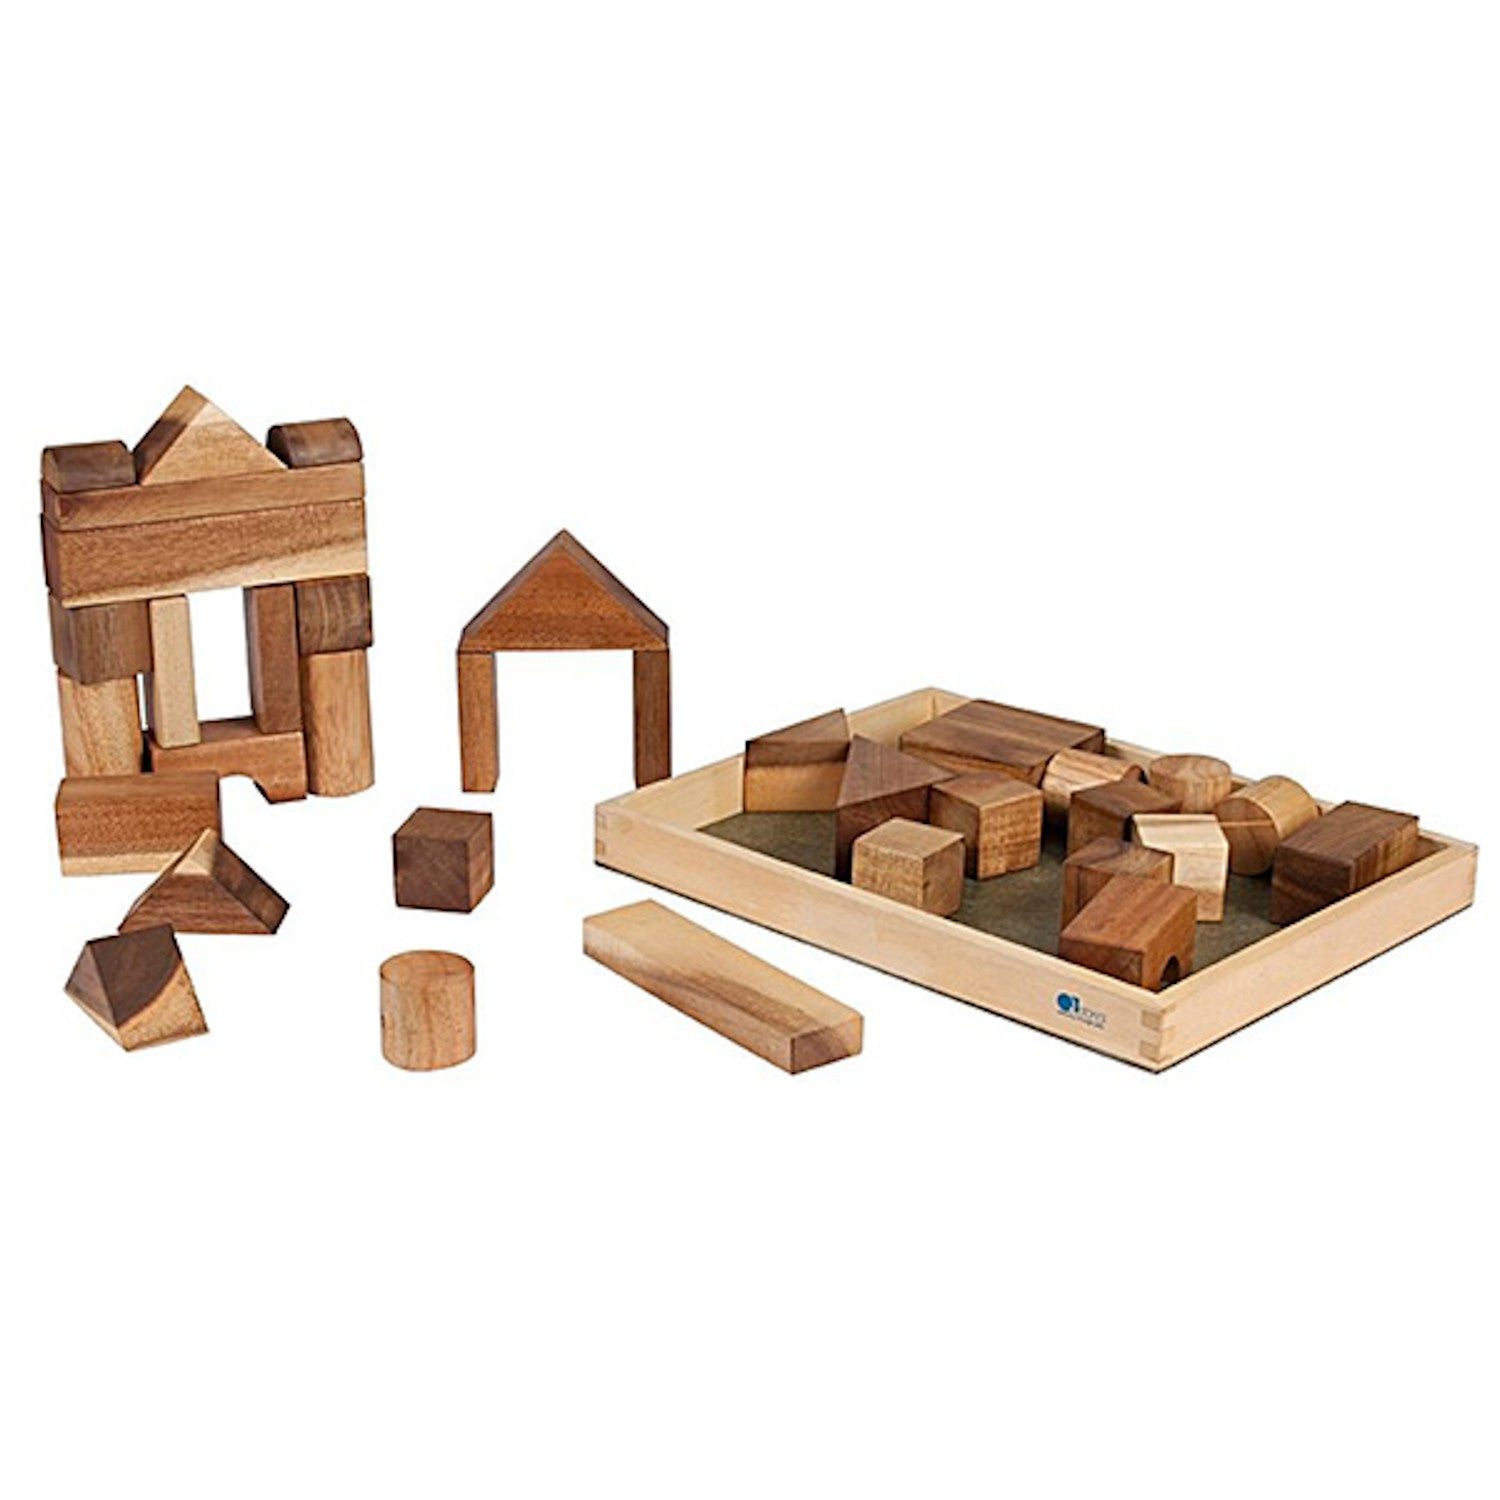 Q Toys Natural Wooden Blocks 34 pc